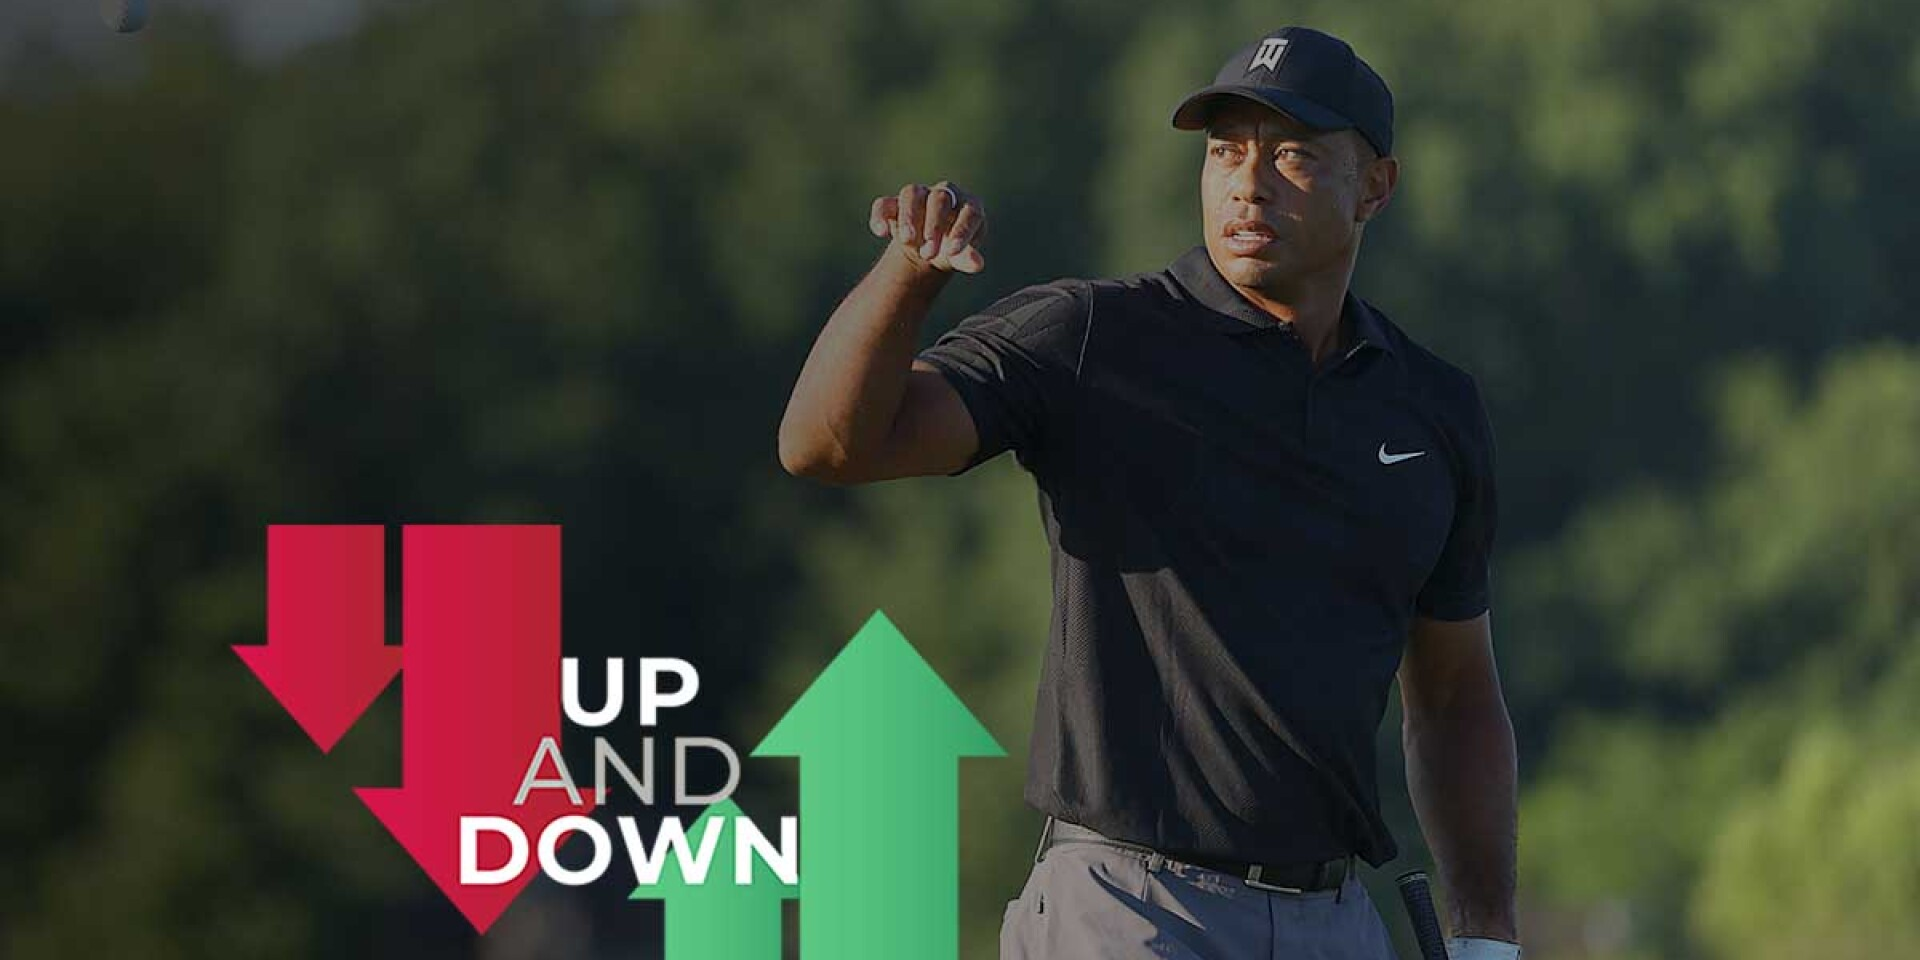 Tiger Woods Up and Down